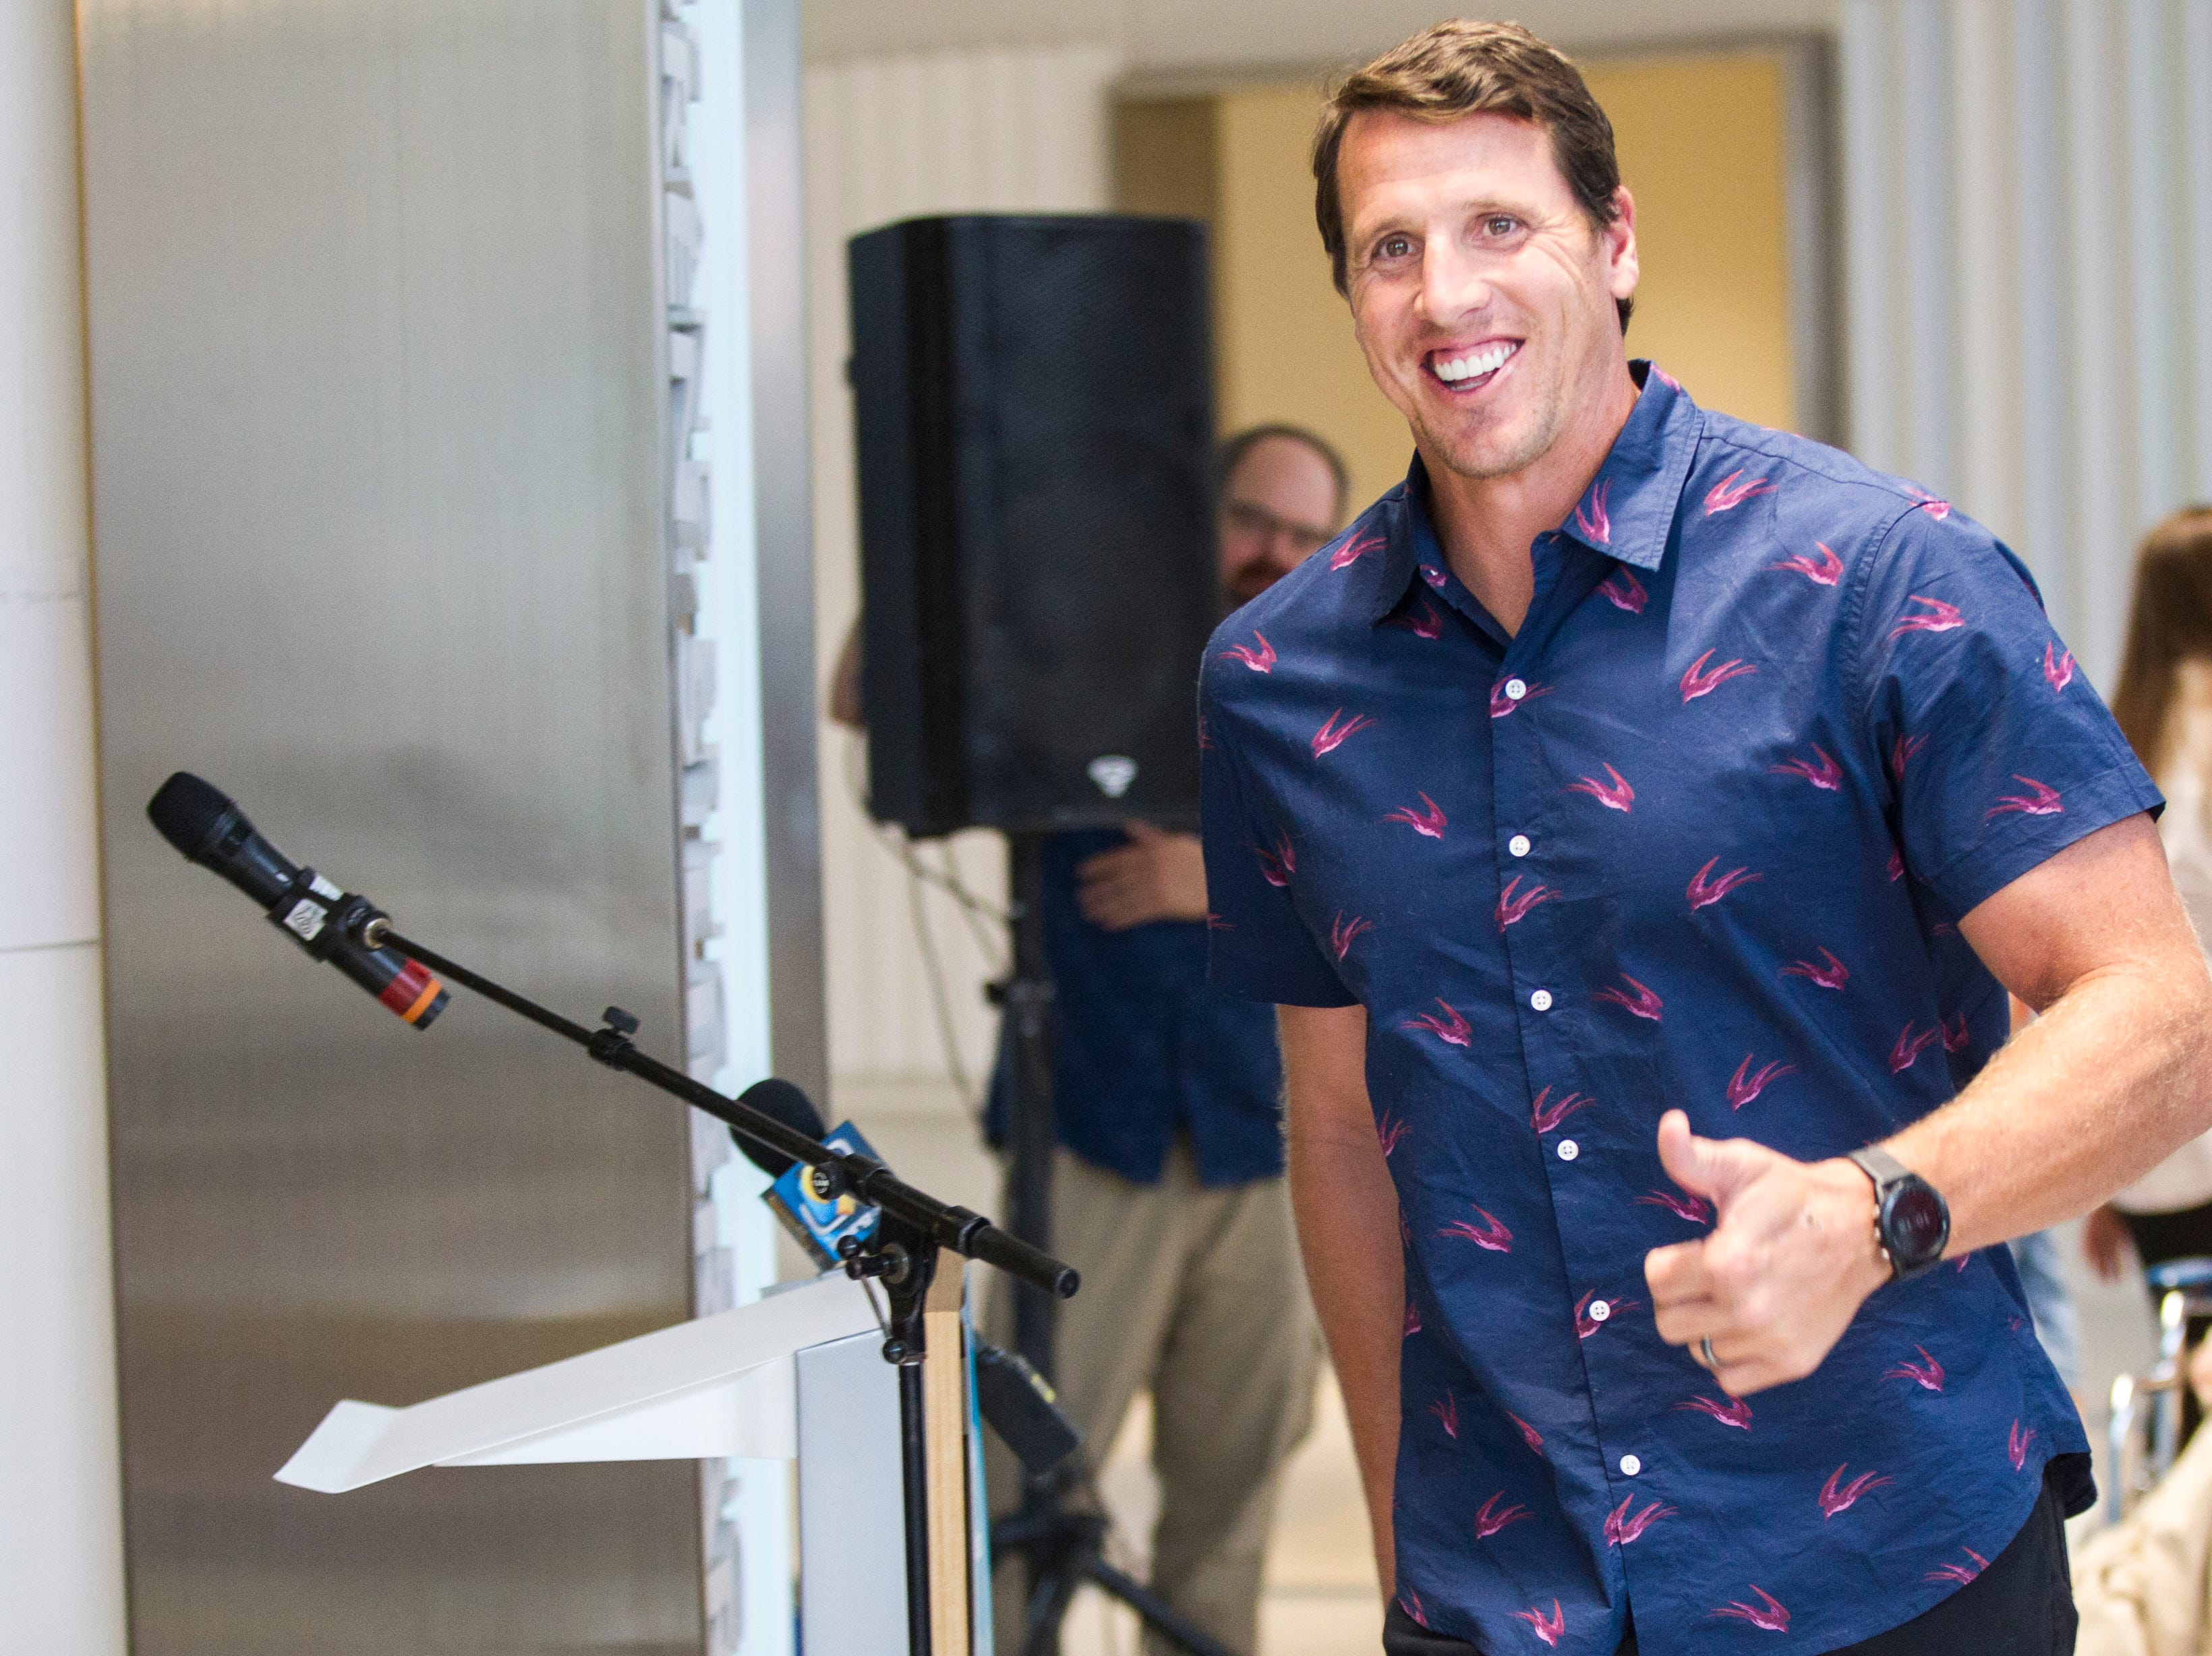 Chad Greenway, former Iowa and Minnesota Vikings football player, smiles while walking to a podium during a ribbon cutting event on Friday, Aug. 31, 2018, at the University of Iowa Stead Family Children's Hospital in Iowa City. Greenway's Lead the Way Foundation contributed a cart of electronics and games for families and patients at the hospital.